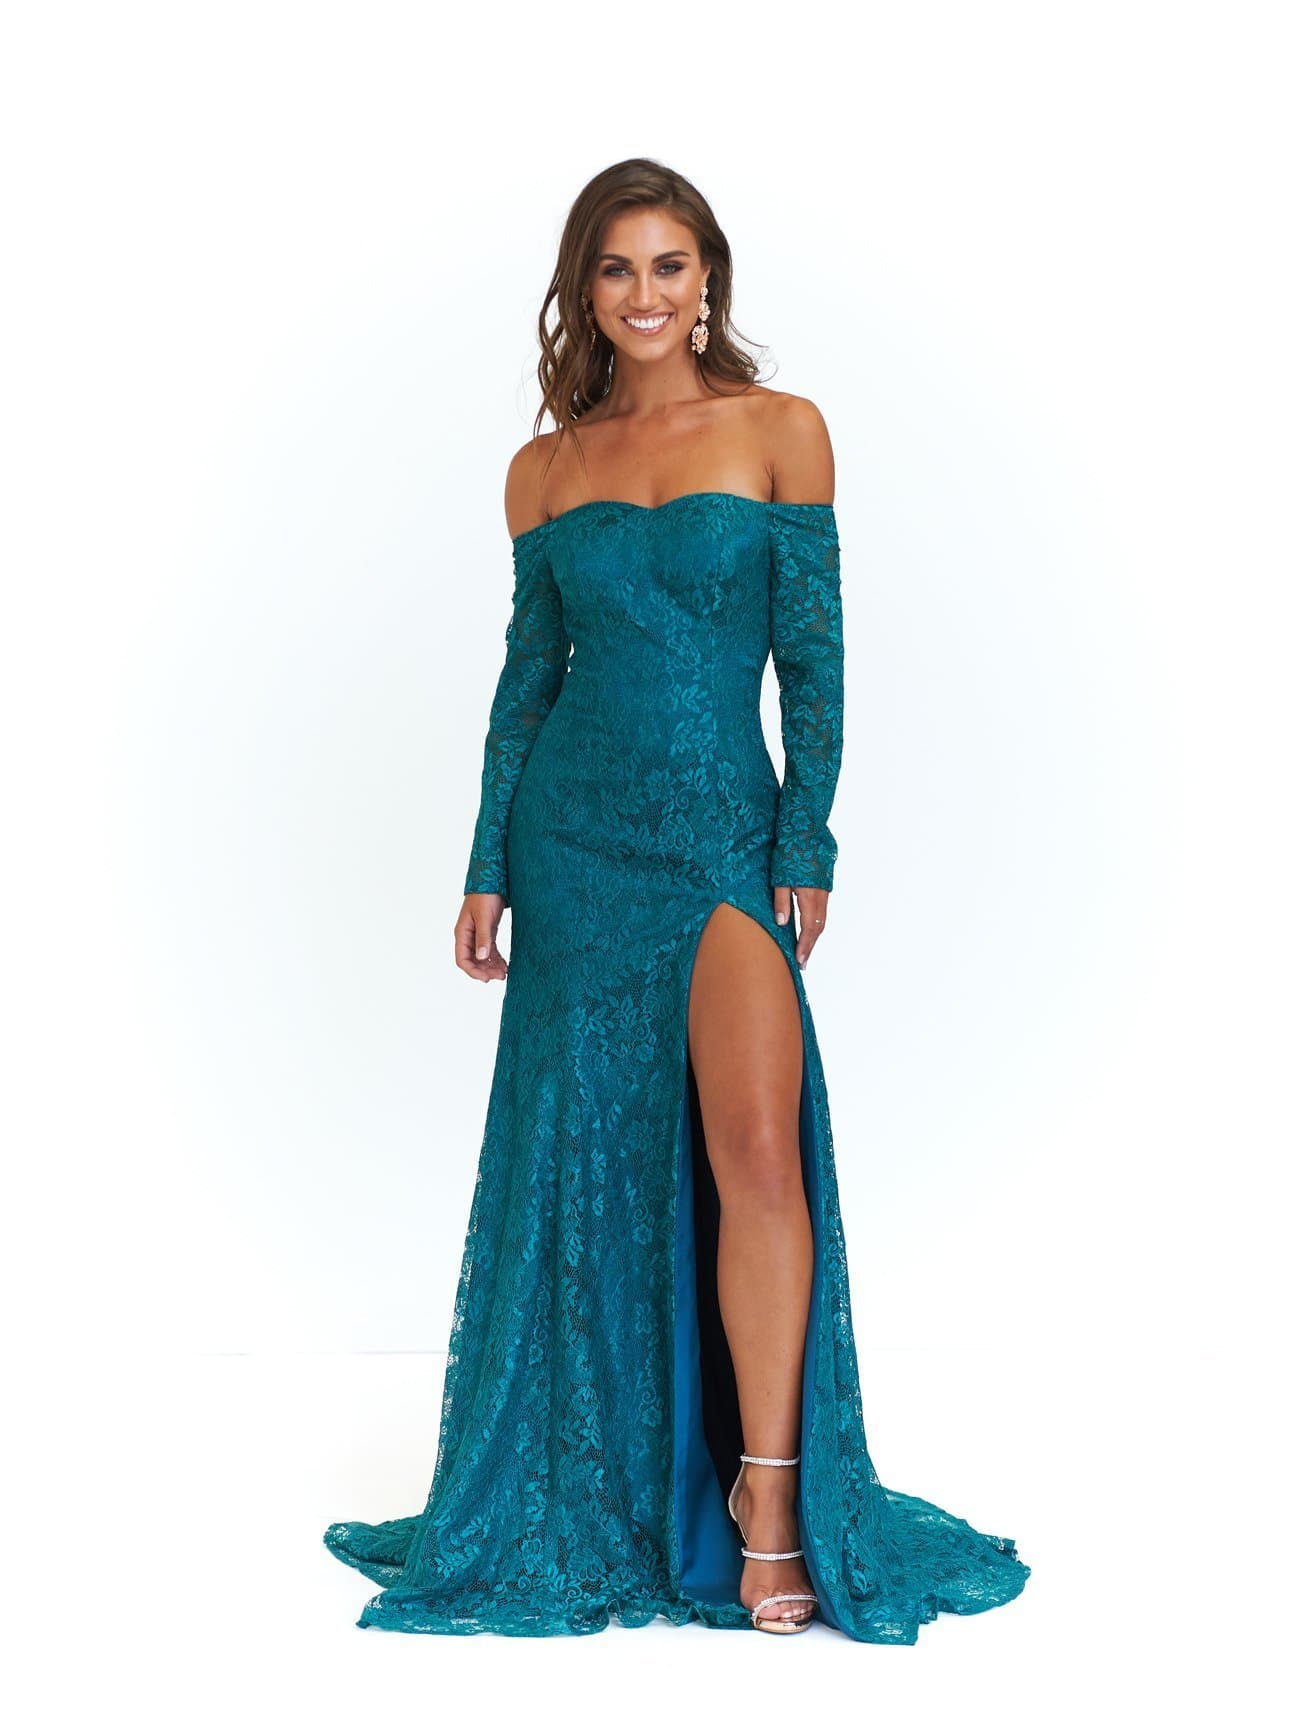 5576442dfe21 A N Duaa - Teal Off-Shoulder Gown with Long Sleeves – A N Luxe Label